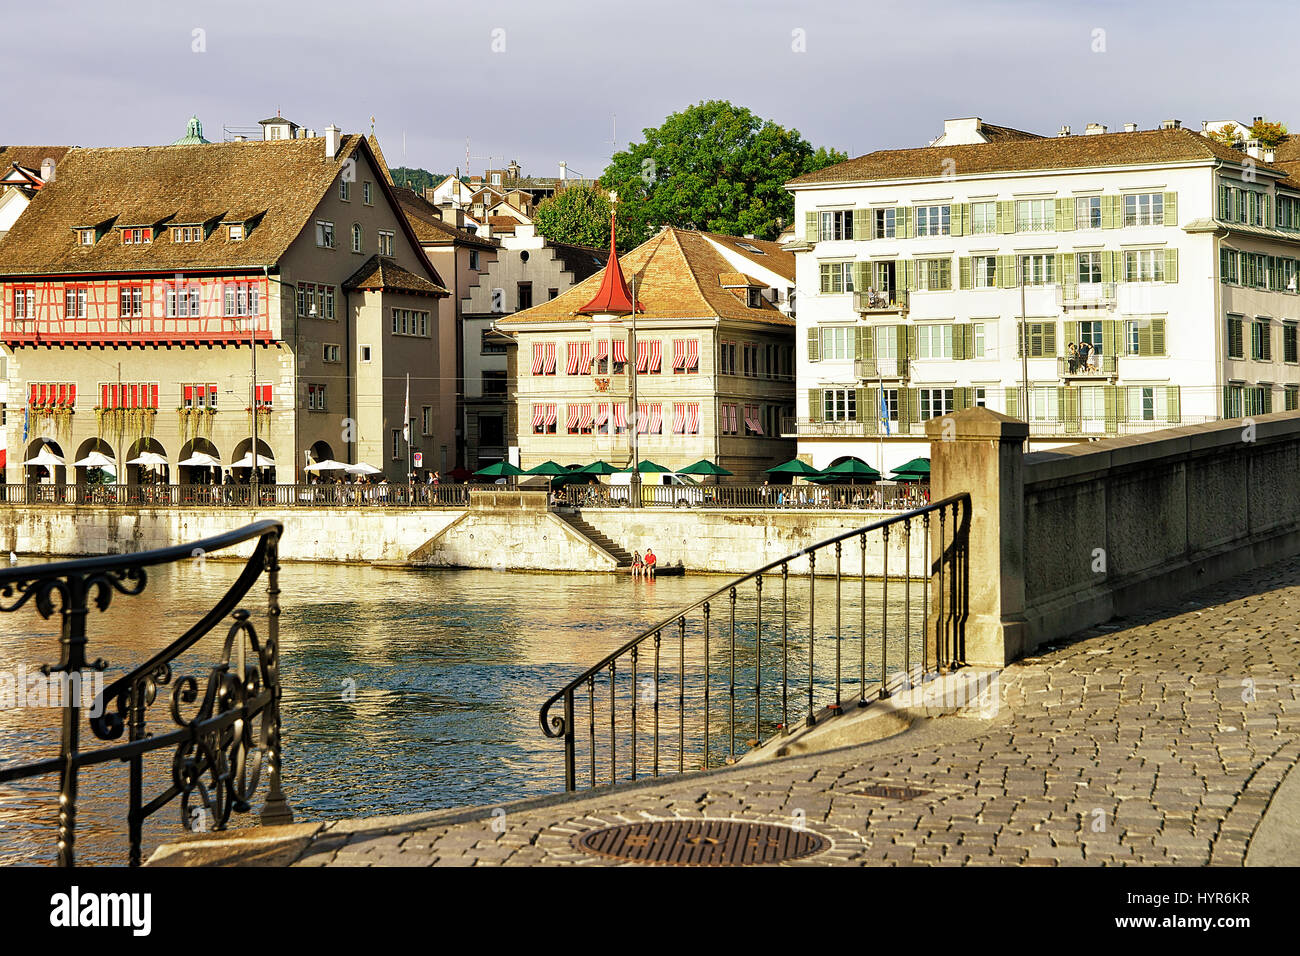 Limmatquai at Zurich old town center - Stock Image